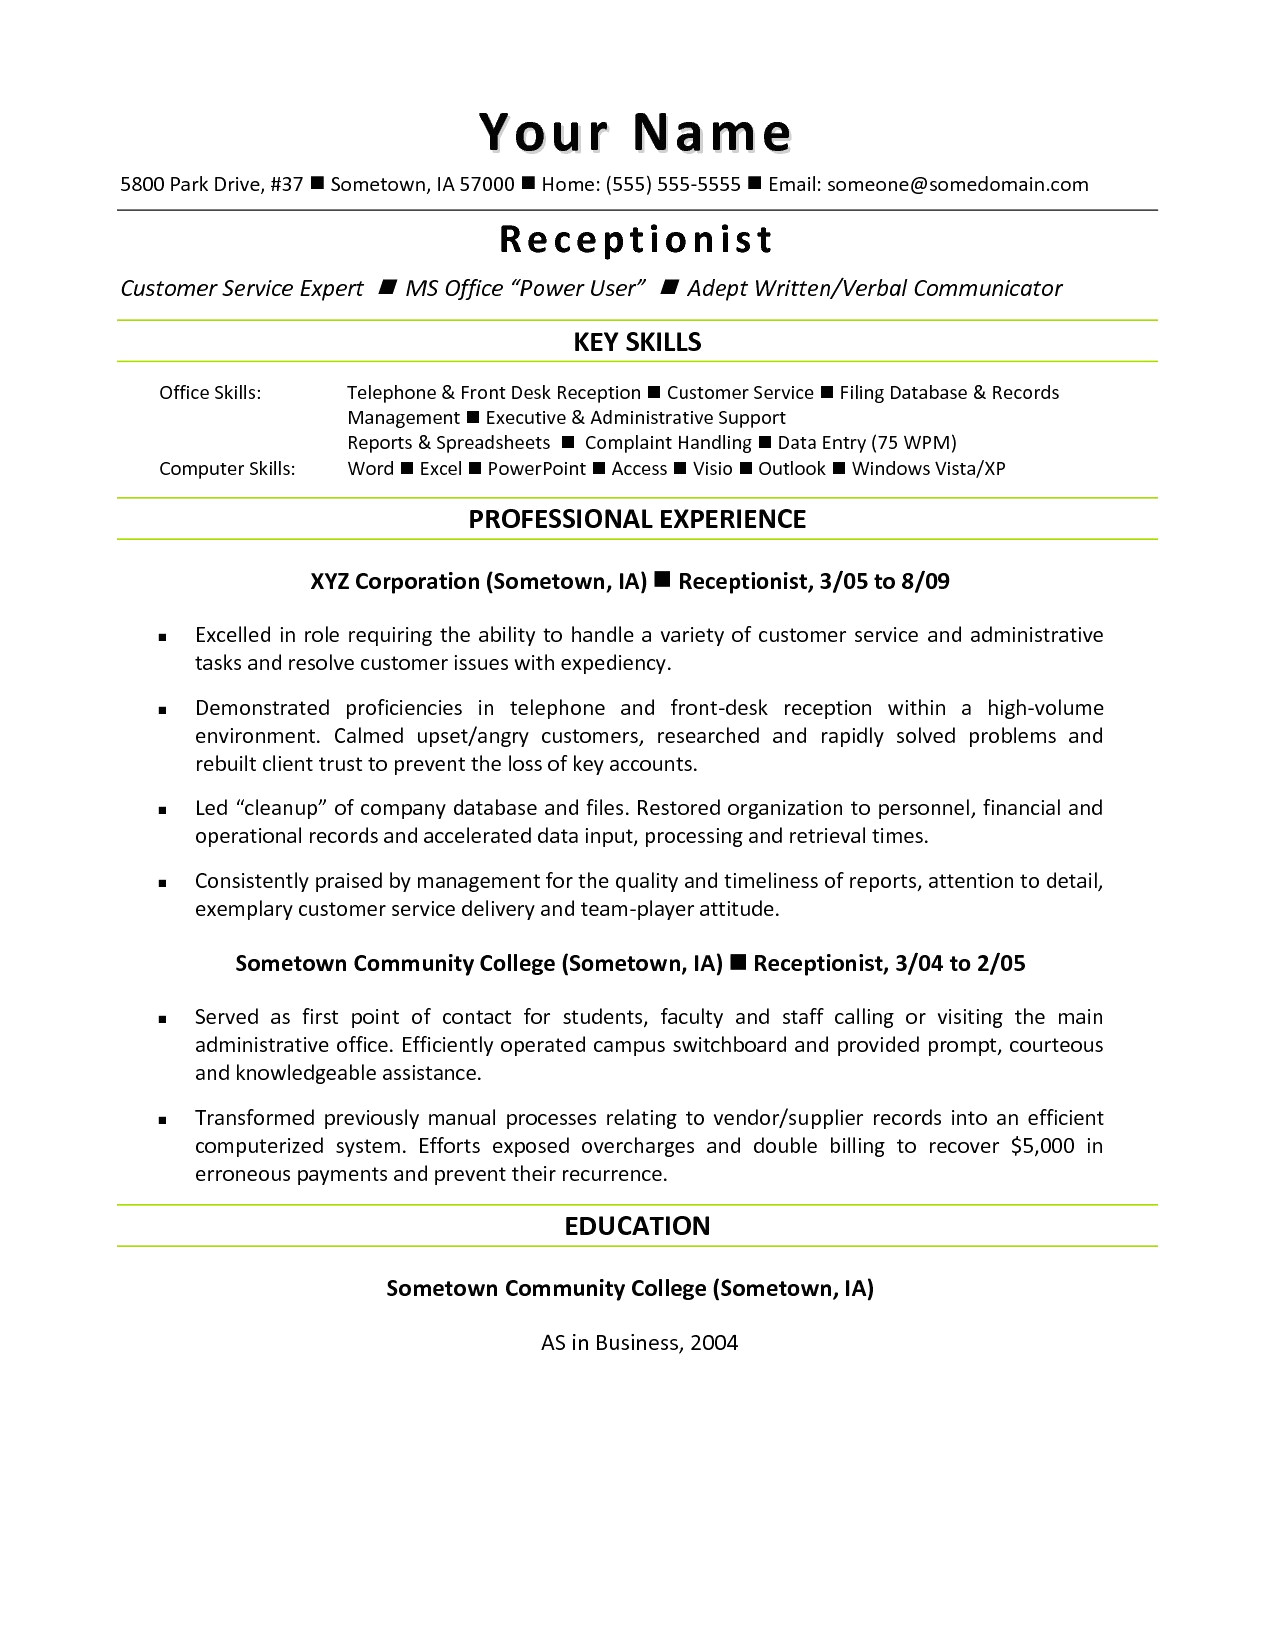 Front Desk Receptionist Resume - 42 Concepts Executive assistant Sample Resume